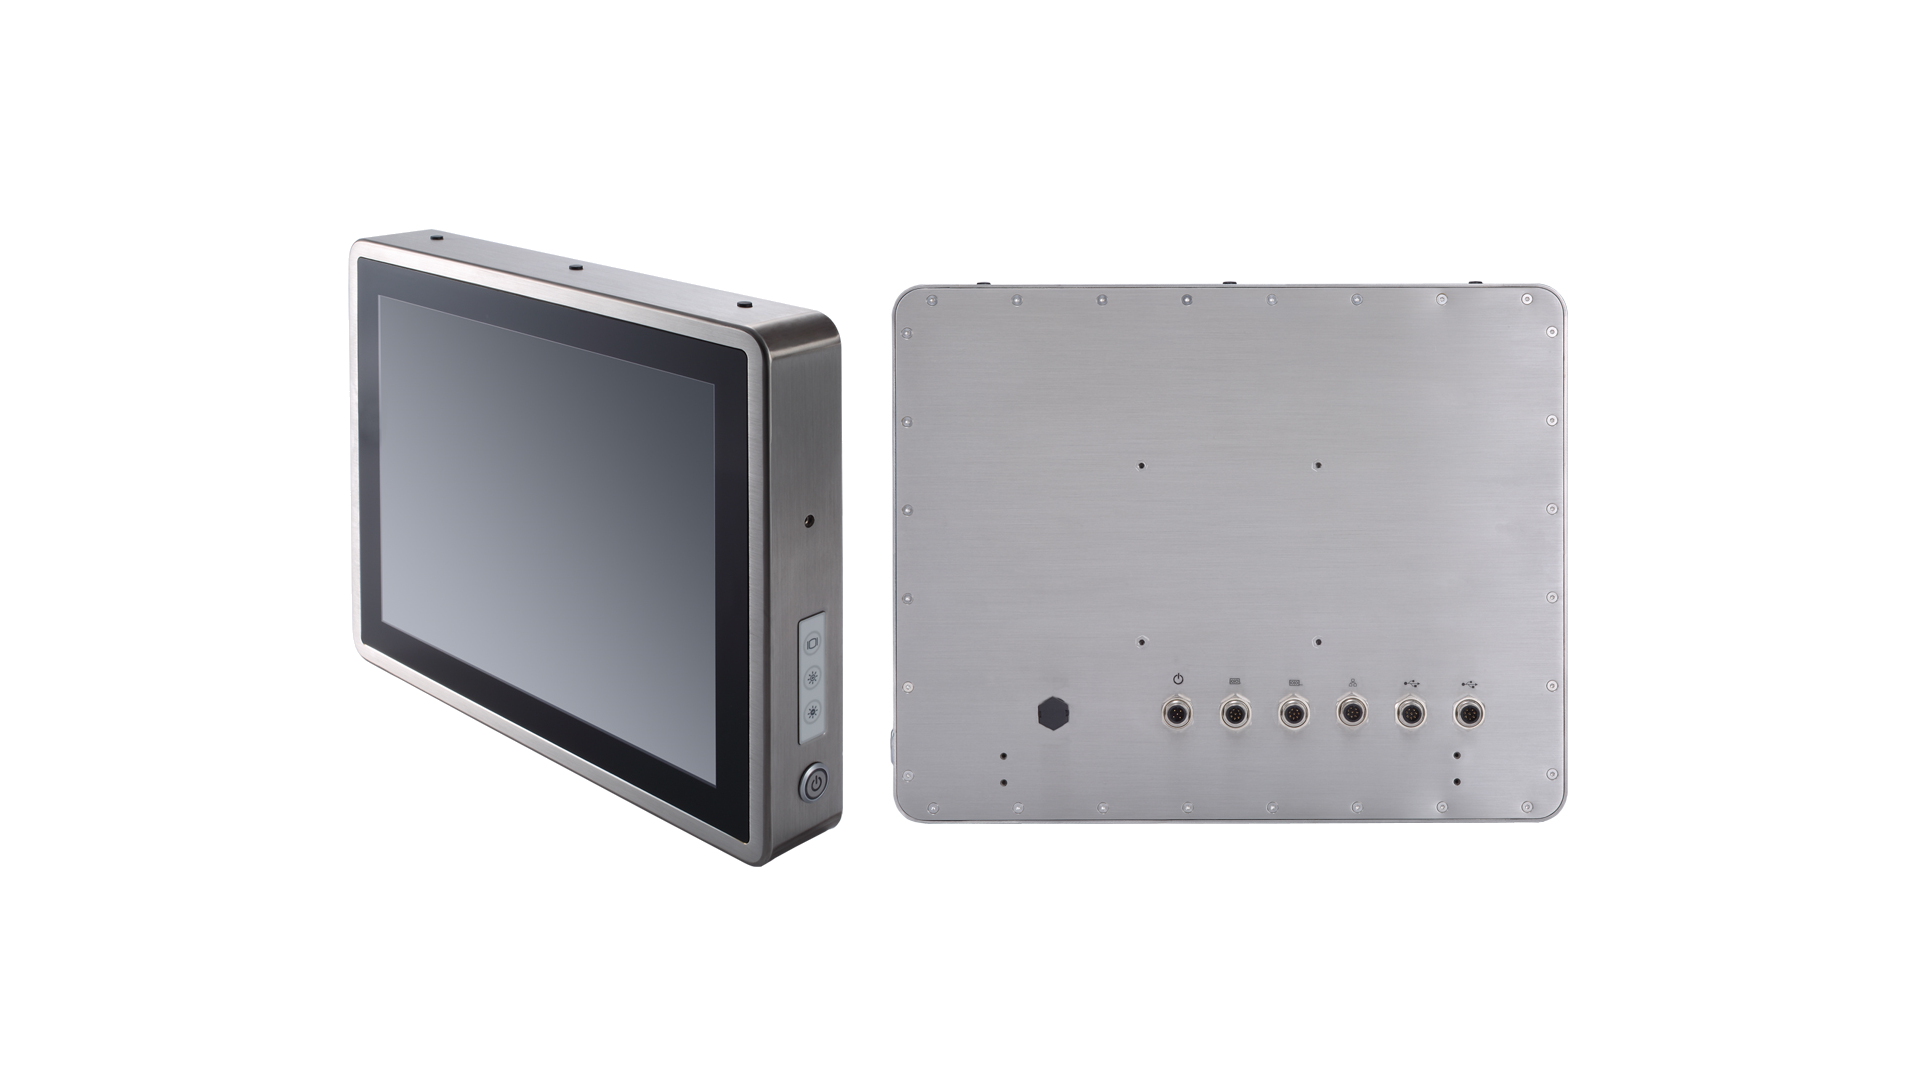 stainless-steel-ip65-rated-panel-pc-range